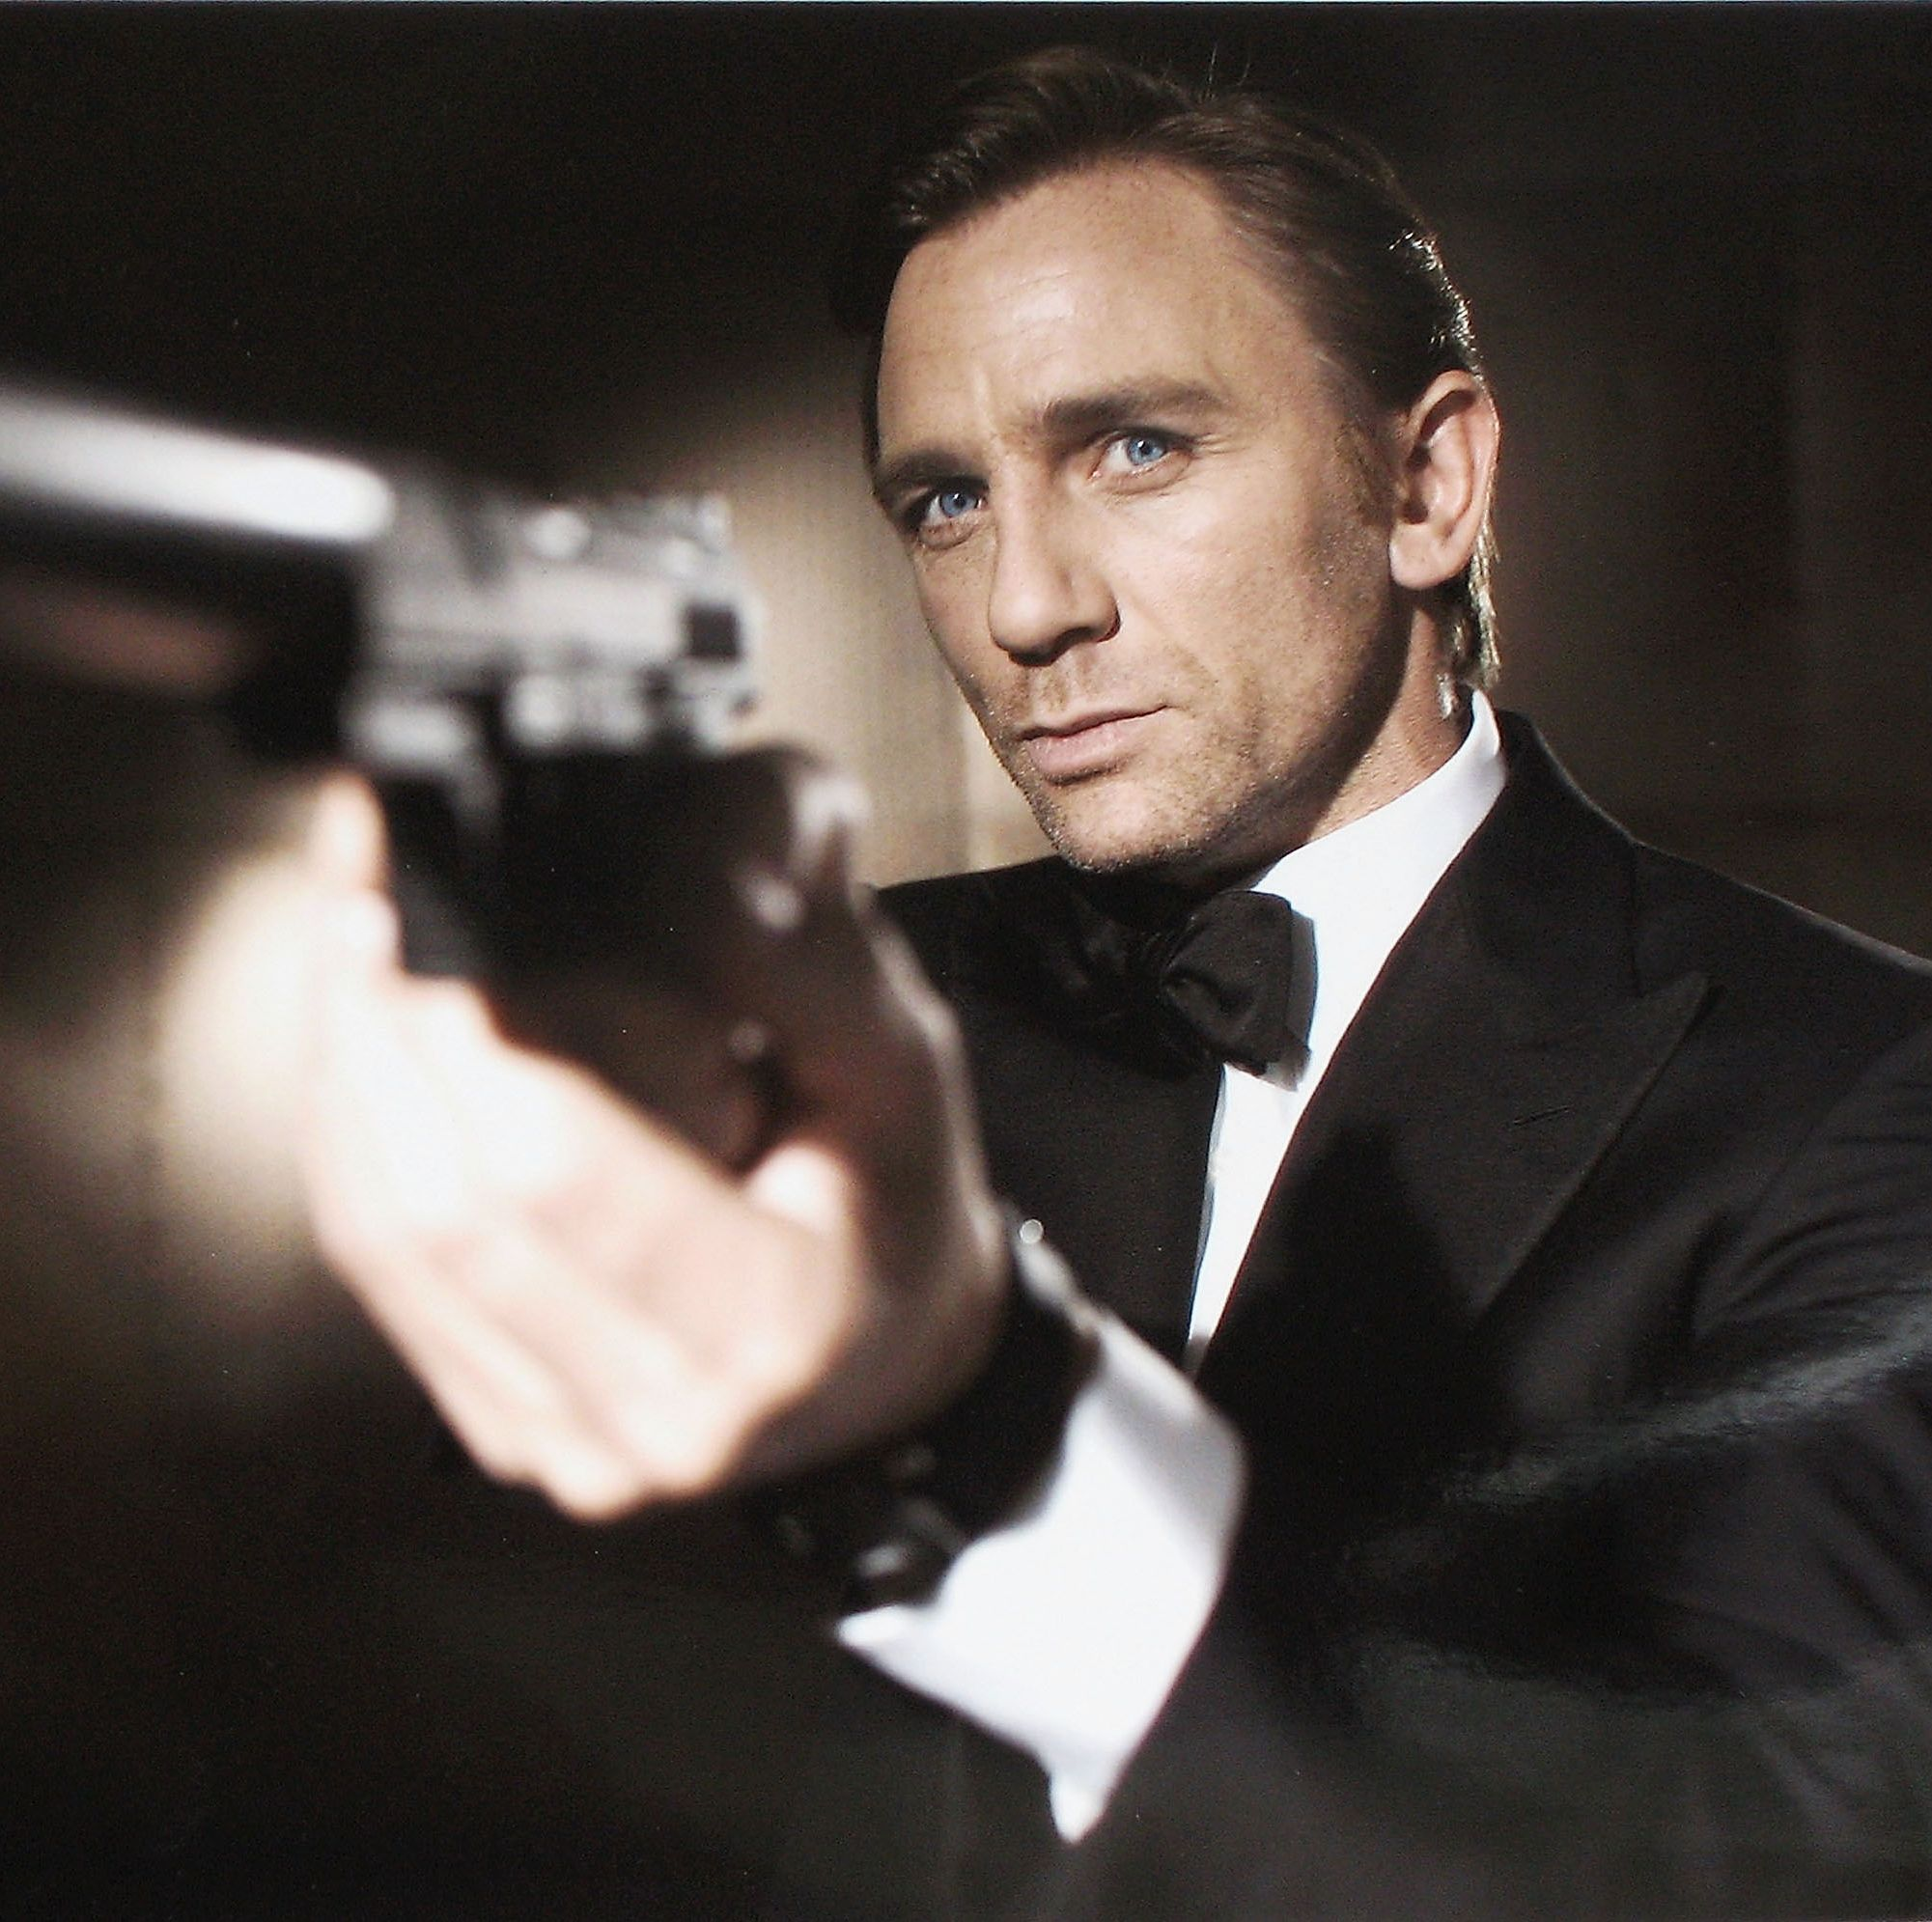 James Bond Has a 'Severe Chronic Alcohol Problem,' According to Health Experts